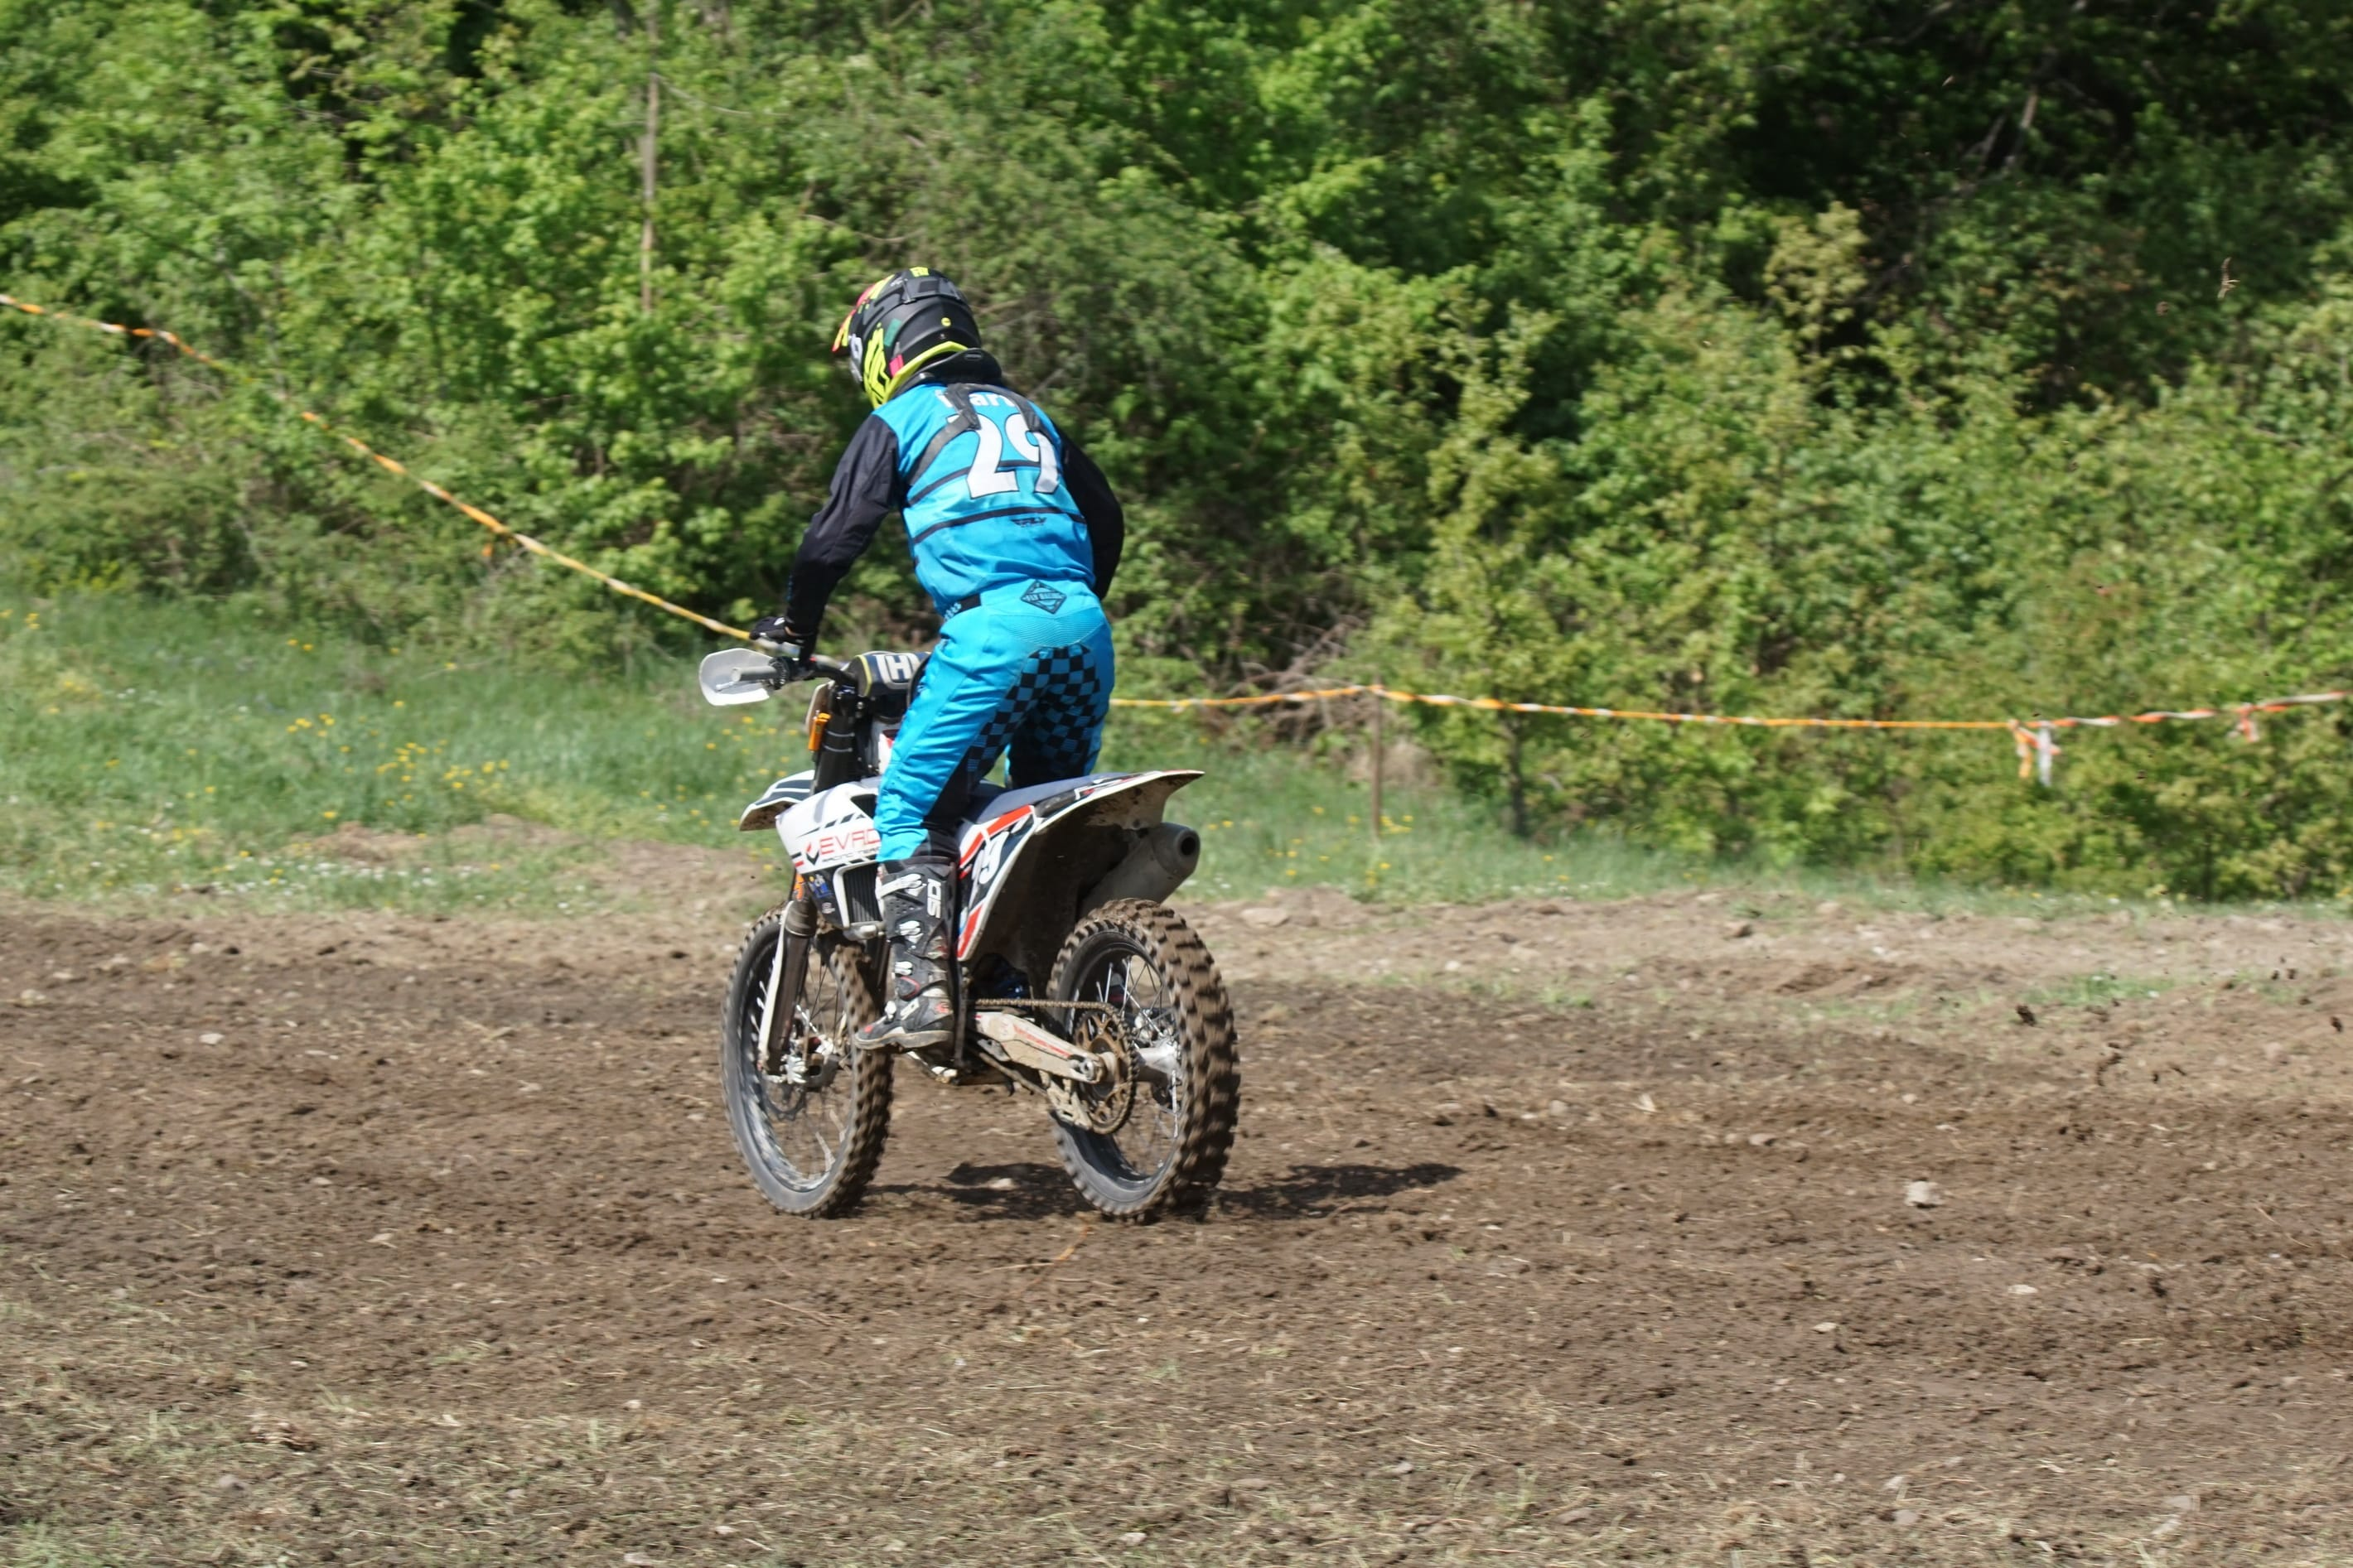 DSC 206_Moto Cross Sittendorf Teil1 am 29.04.2018